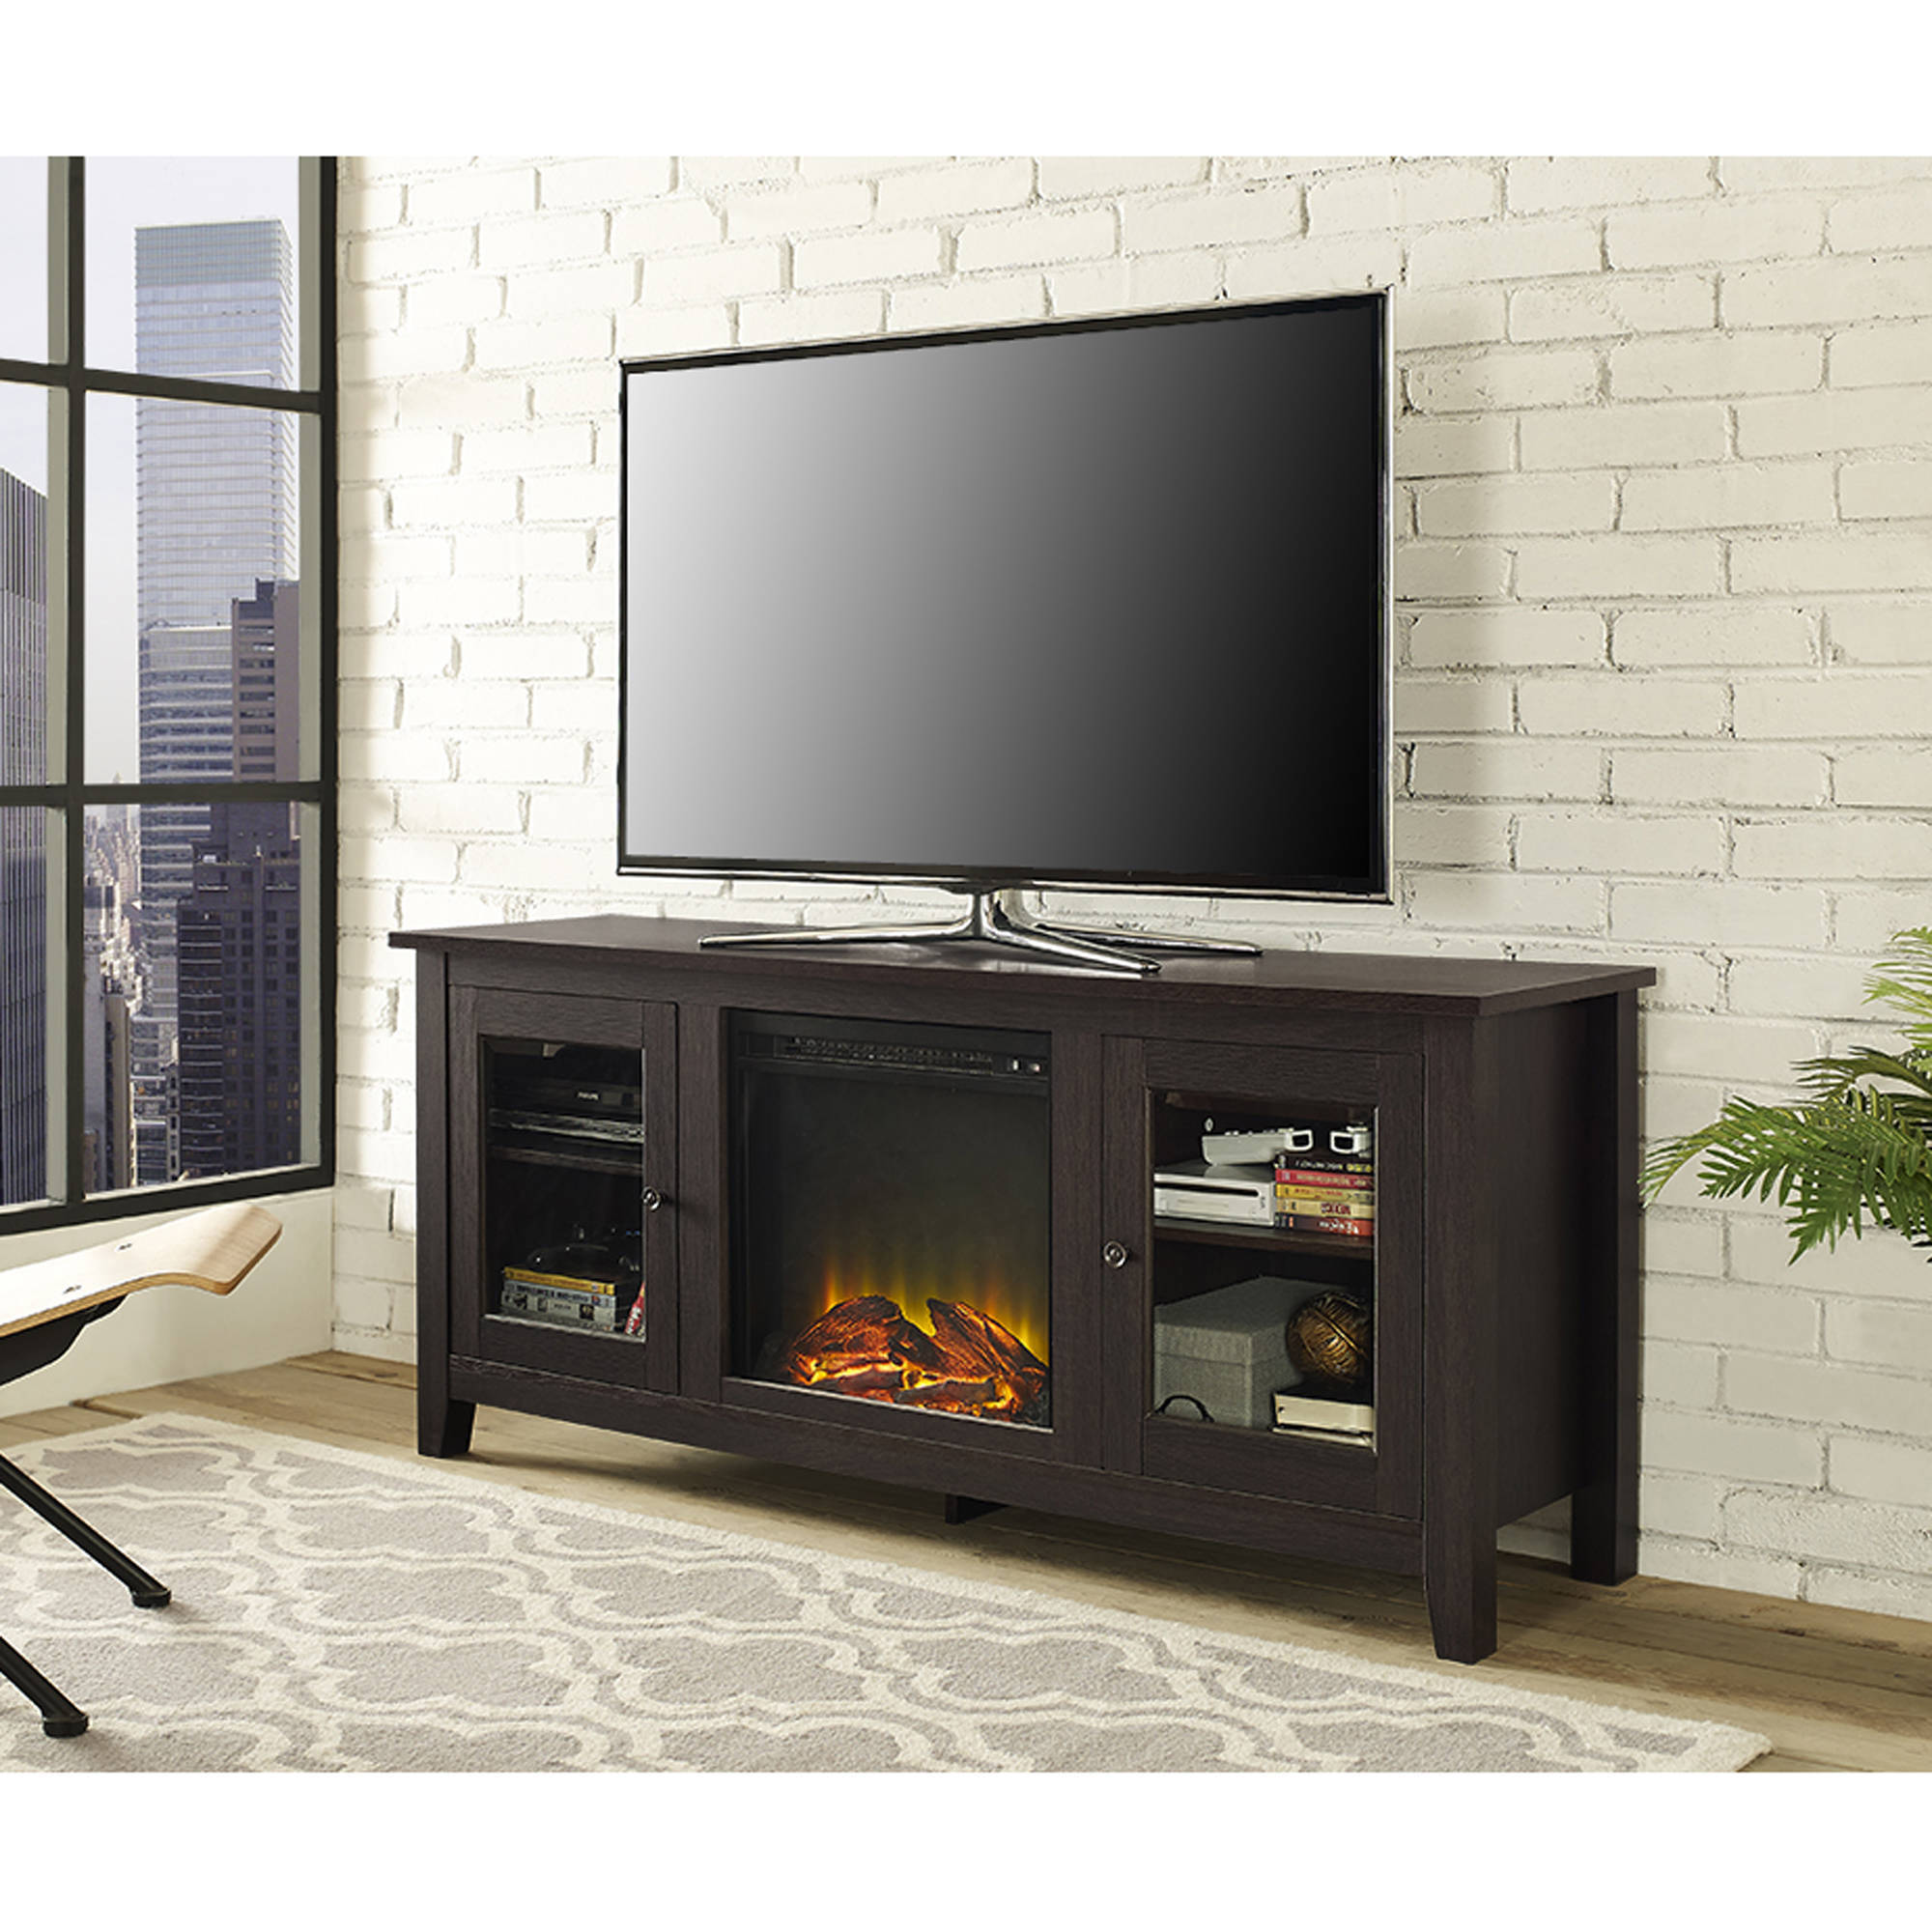 center screen amazon screens espresso dp flat entertainment premium console tv inch wood com stand fireplace tol electric ac for